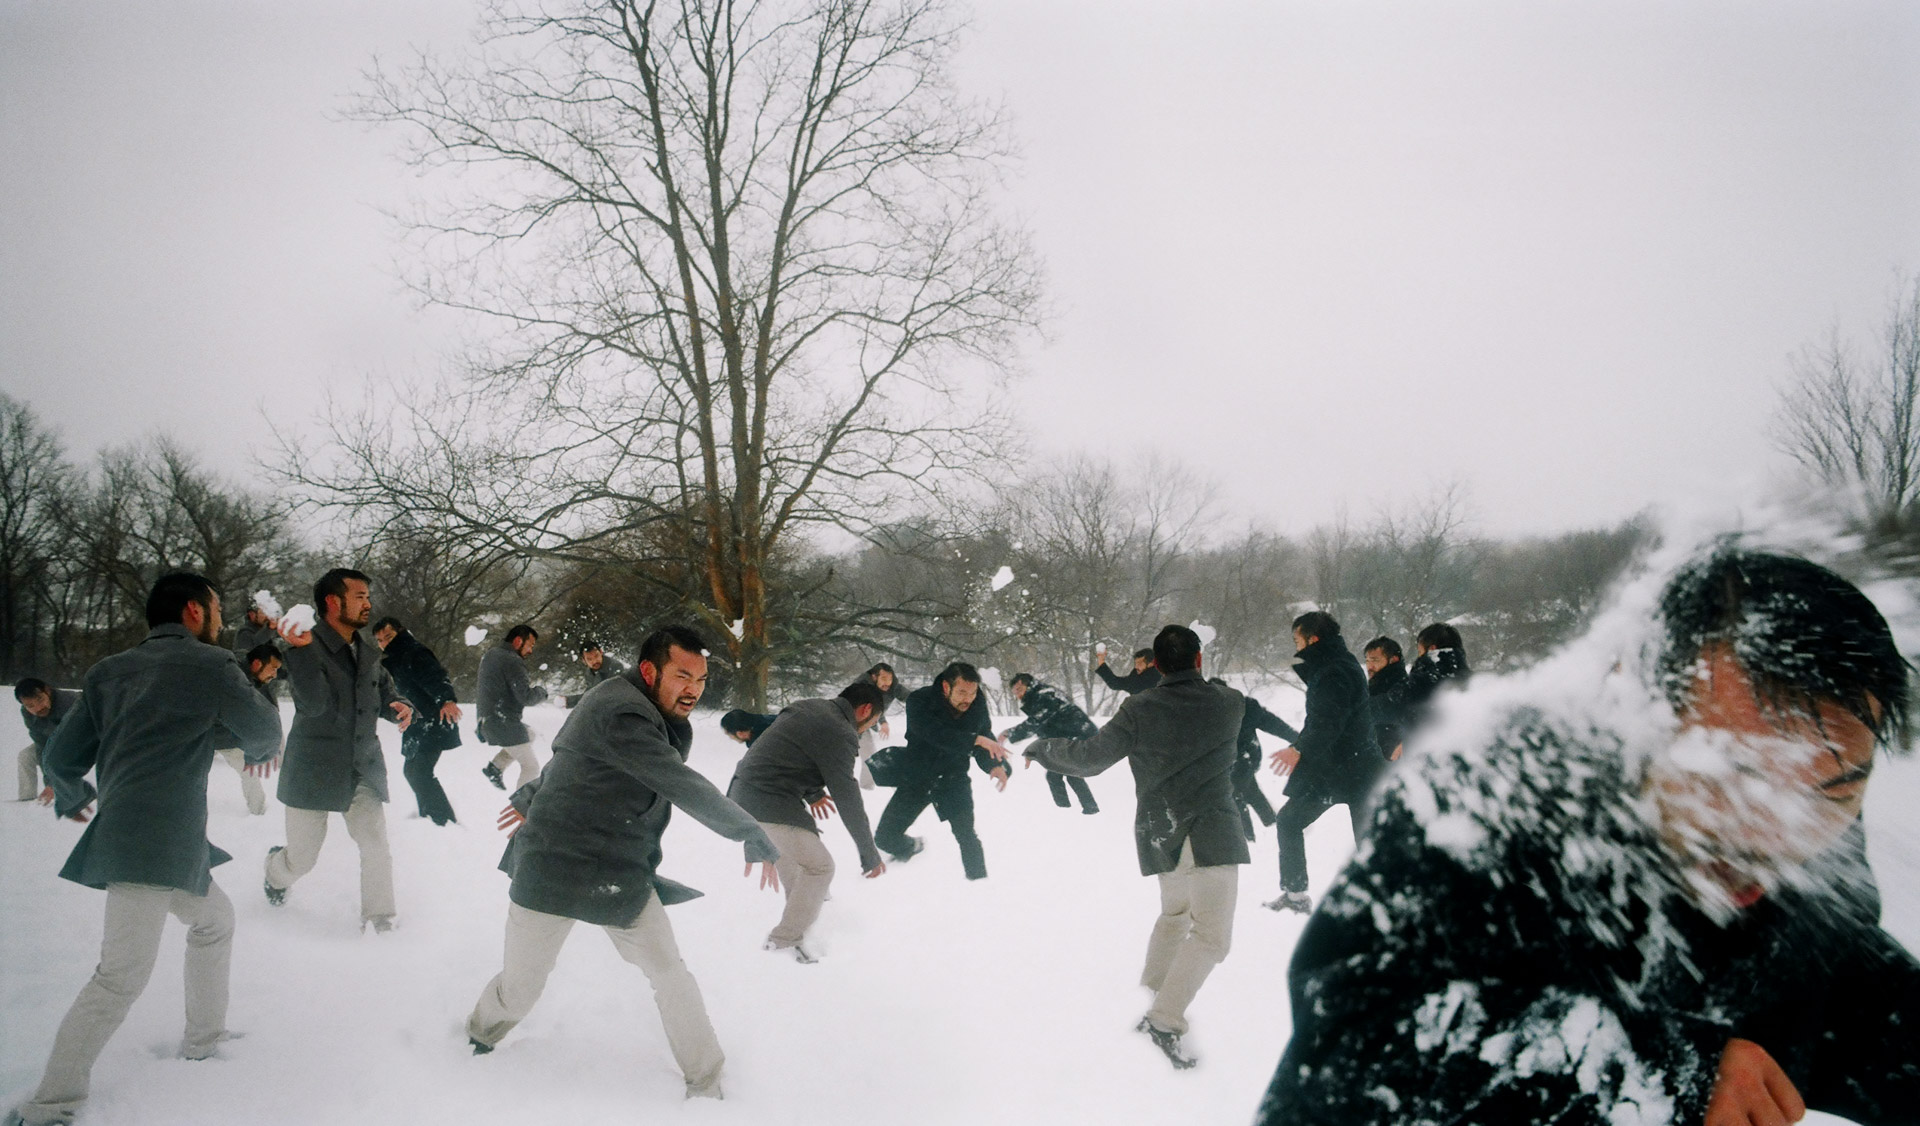 A guy having a snowball fight with himself